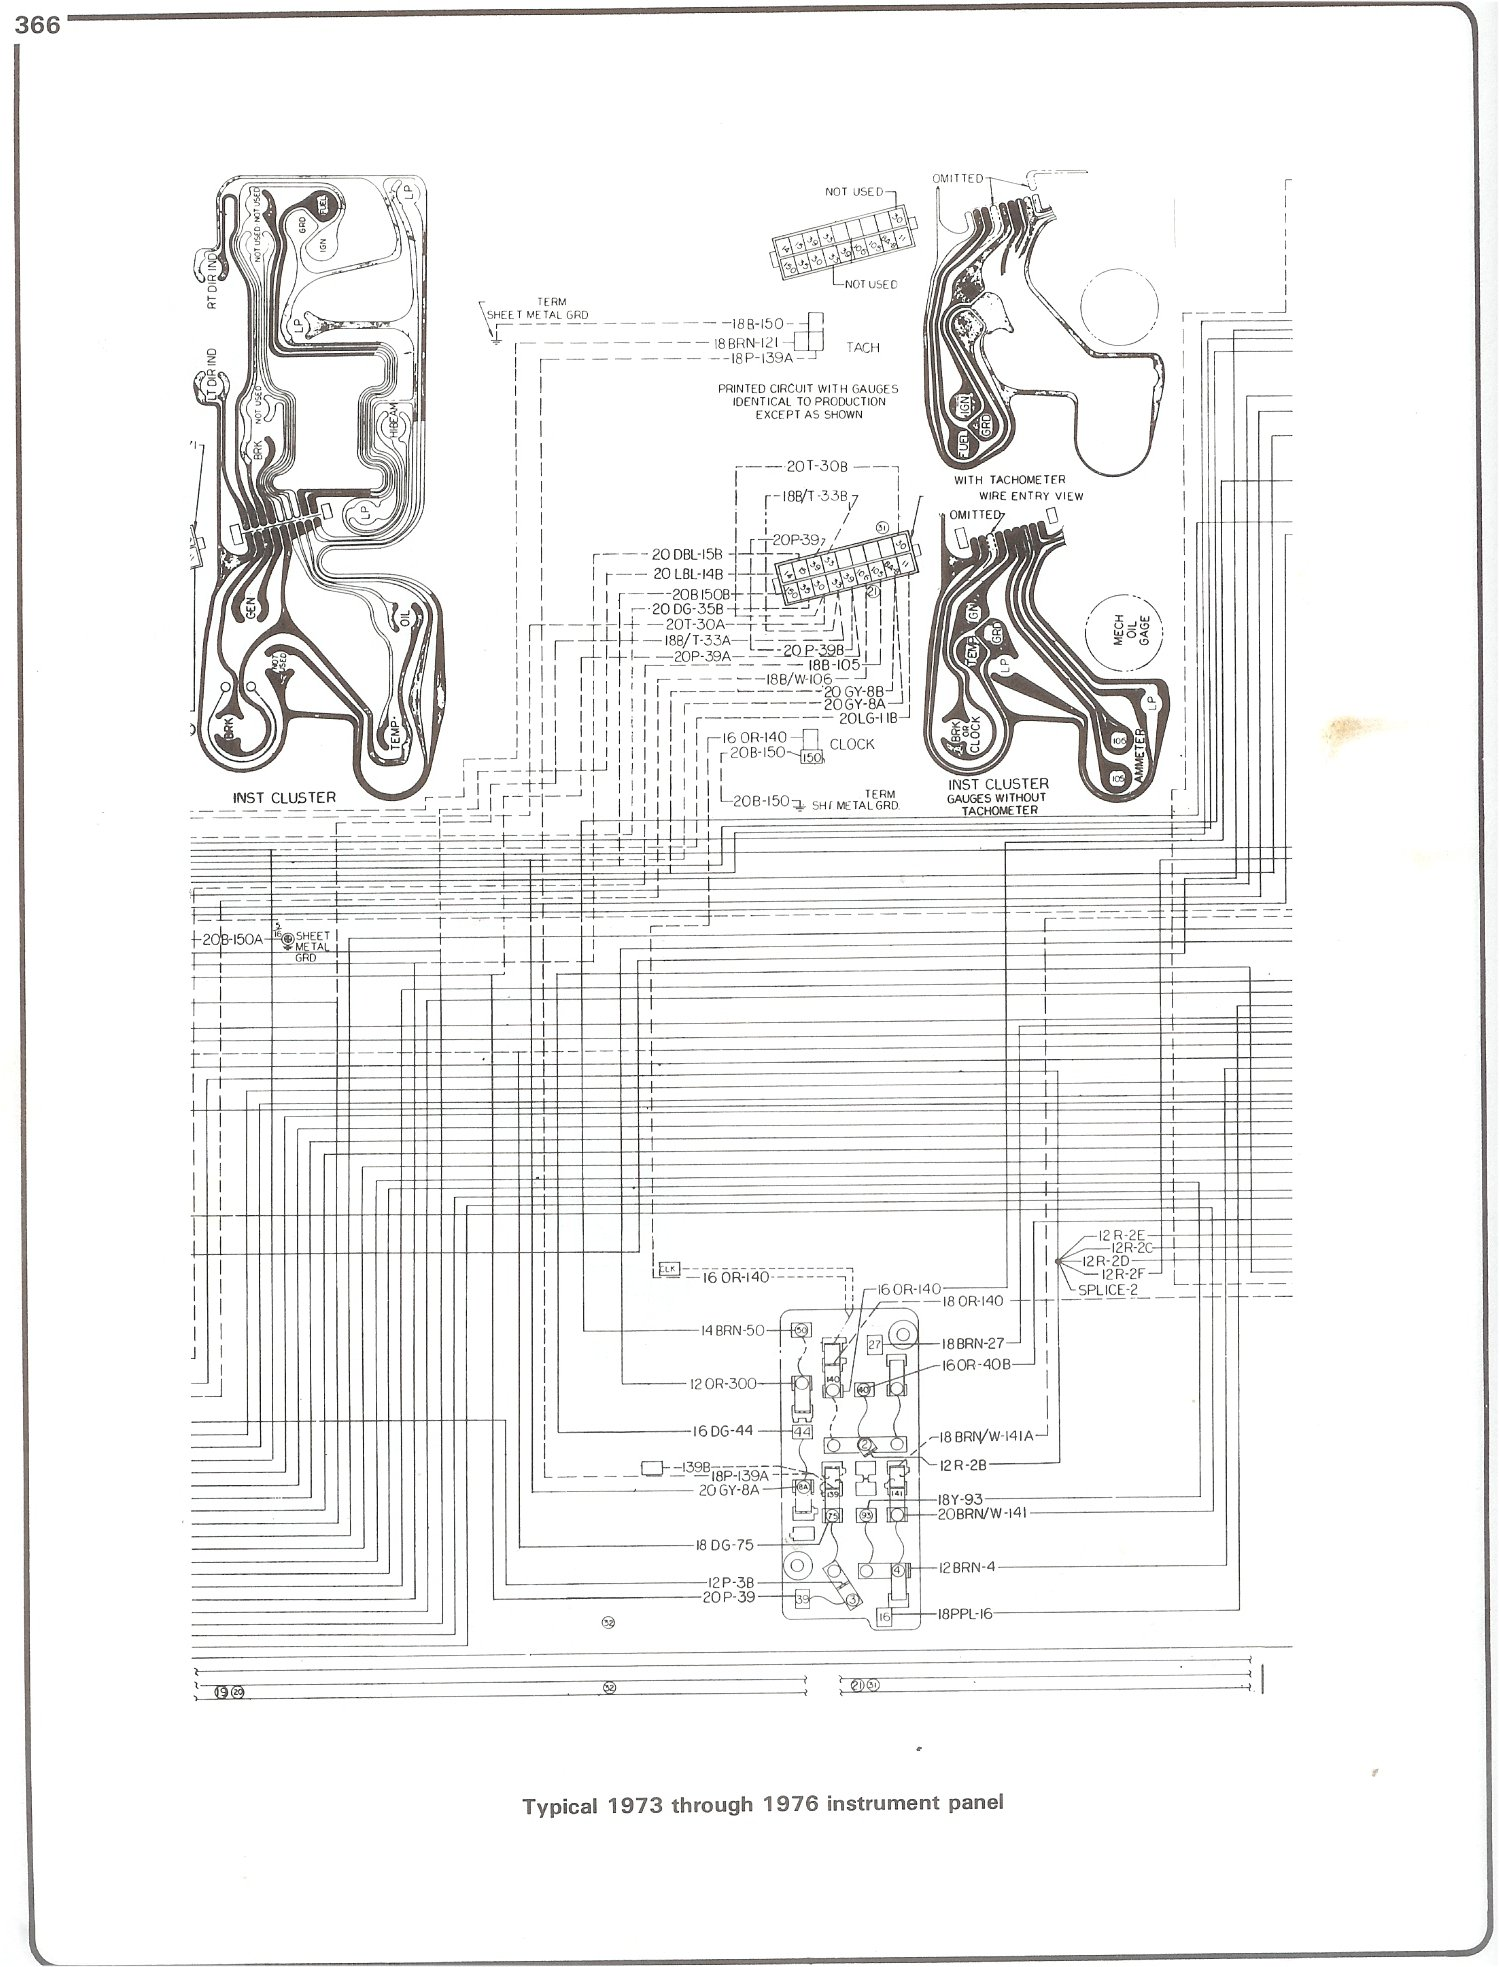 73 76_instrument complete 73 87 wiring diagrams 1979 Pontiac Wiring Diagram at edmiracle.co